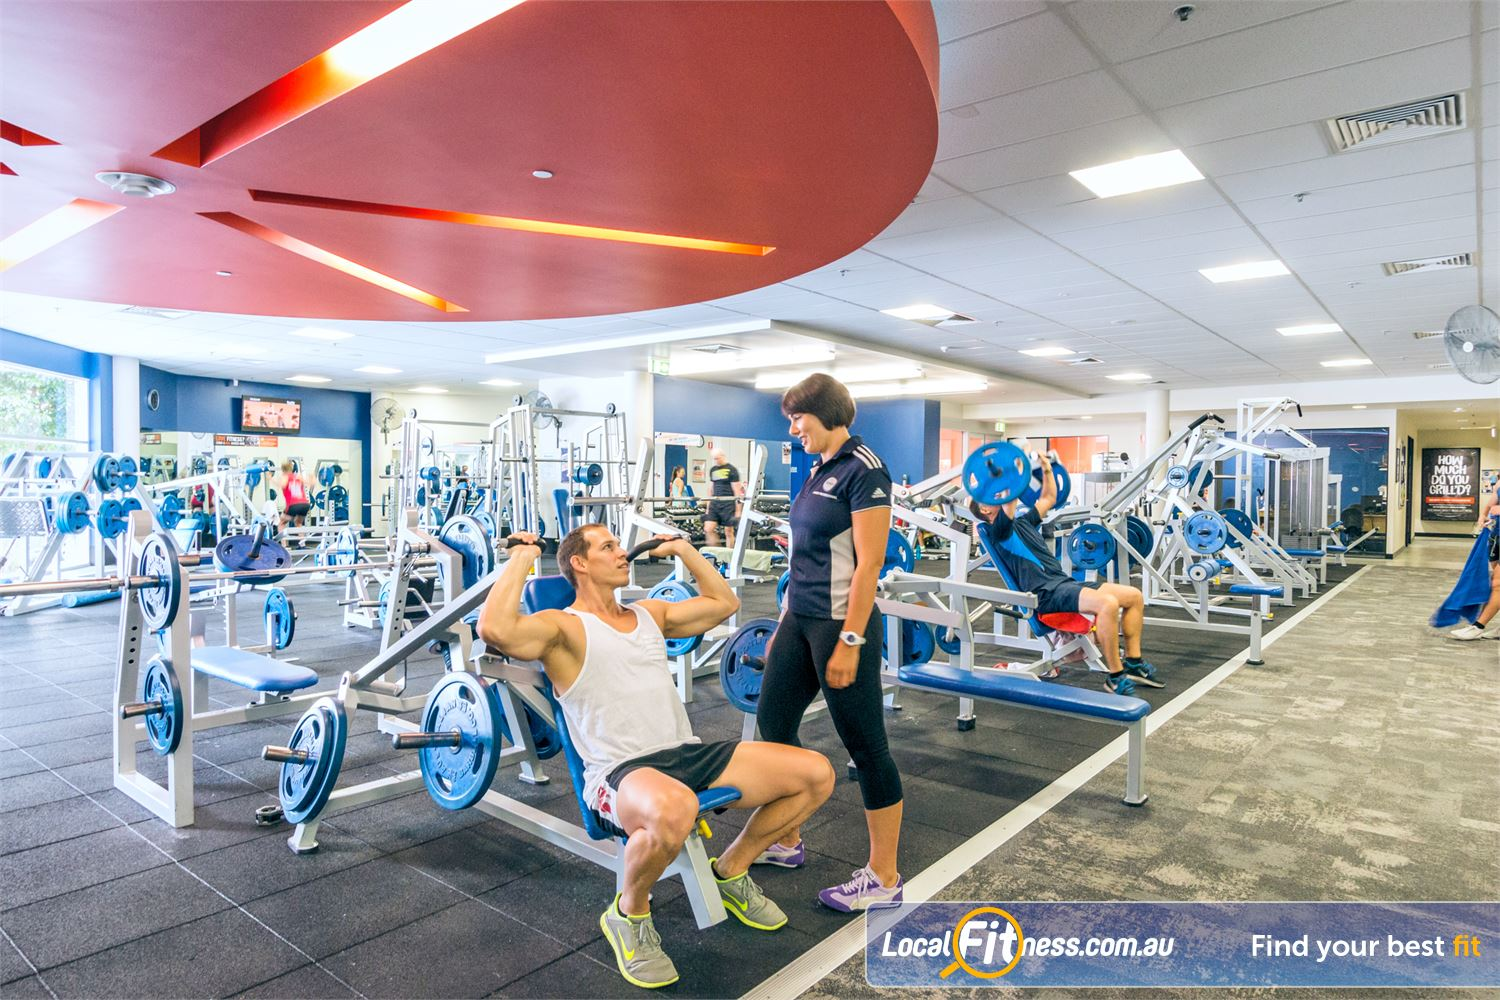 Goodlife Health Clubs Fortitude Valley Our Fortitude Valley gym provides a wide selection of easy to use plate-loaded equipment.